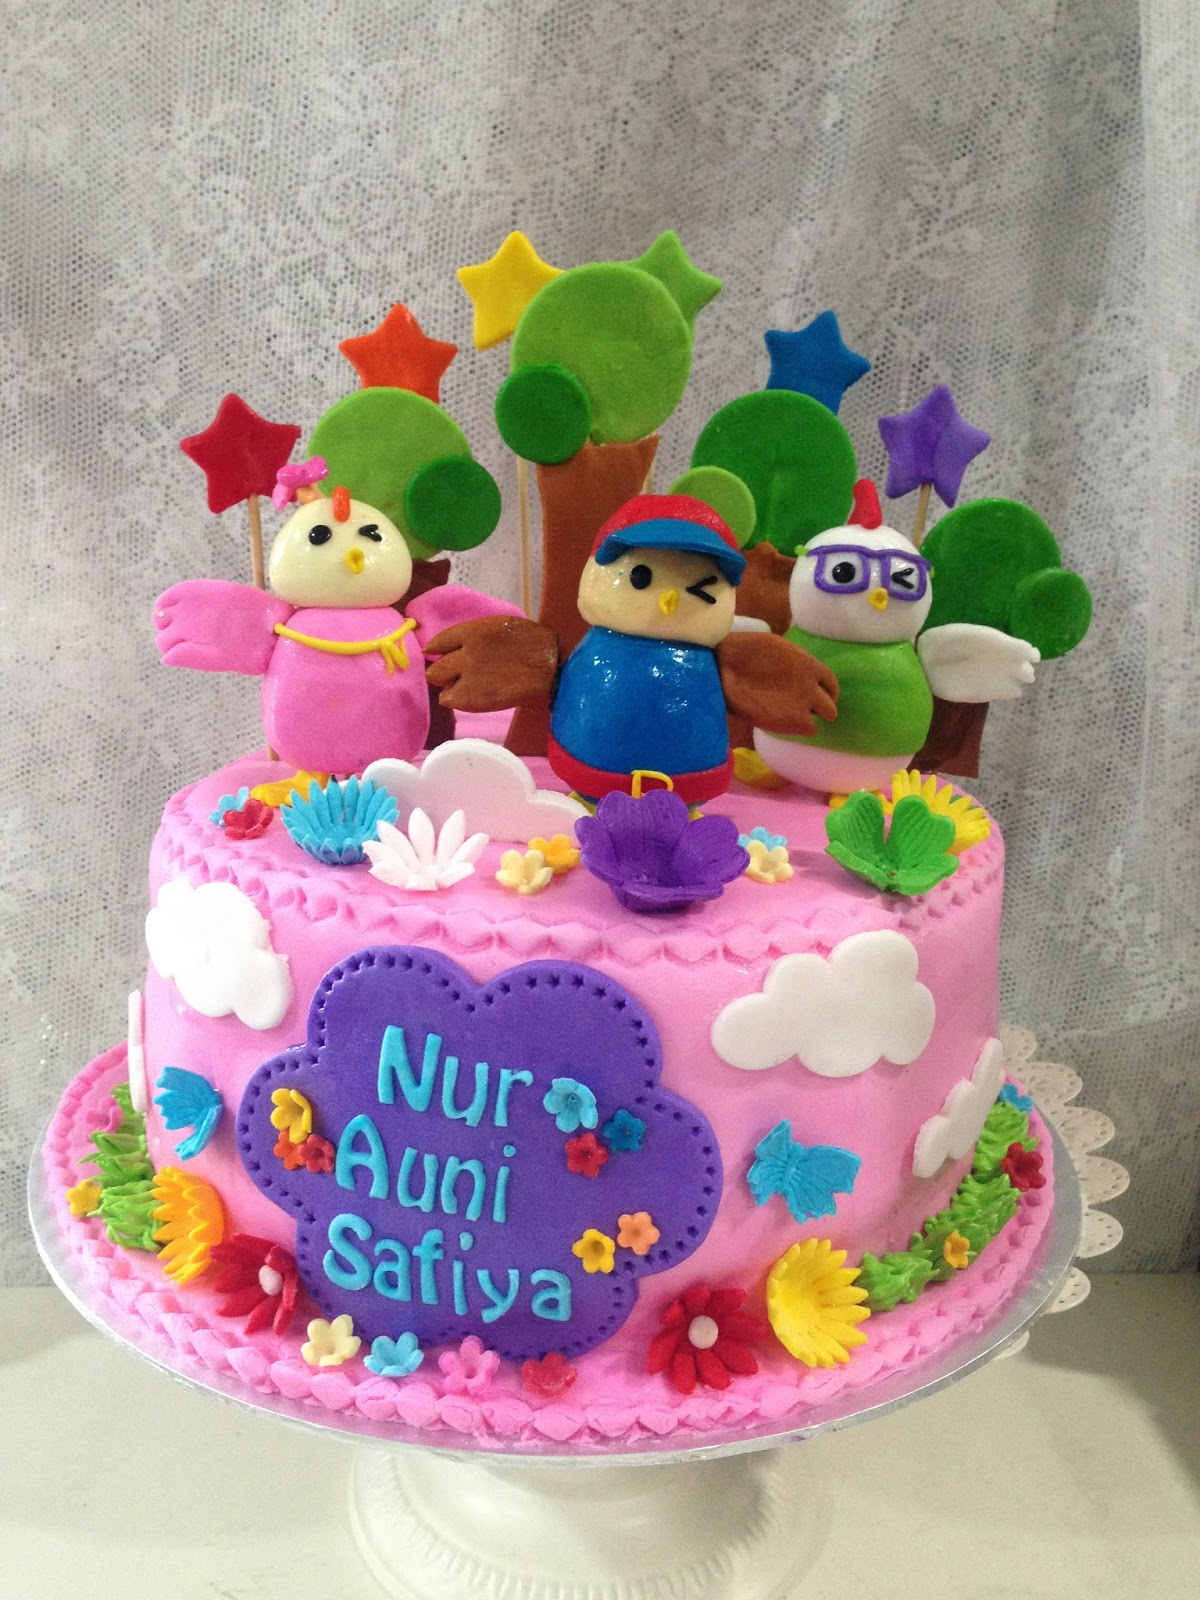 ninie cakes house: Didi & Friends Fondant Birthday Cake